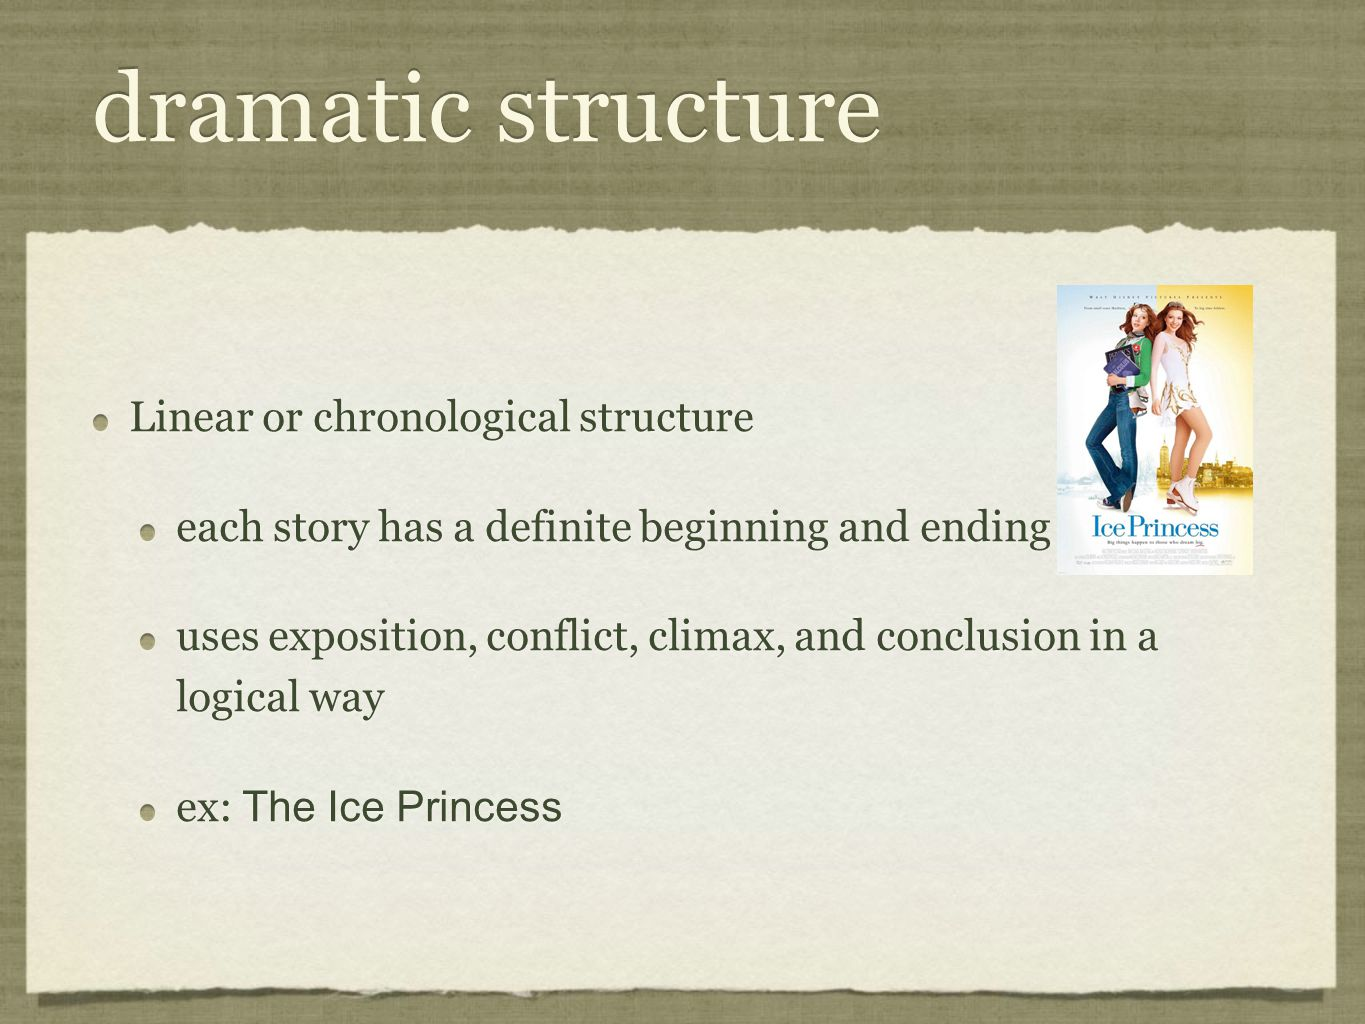 dramatic structure Linear or chronological structure each story has a definite beginning and ending uses exposition, conflict, climax, and conclusion in a logical way ex: The Ice Princess Linear or chronological structure each story has a definite beginning and ending uses exposition, conflict, climax, and conclusion in a logical way ex: The Ice Princess